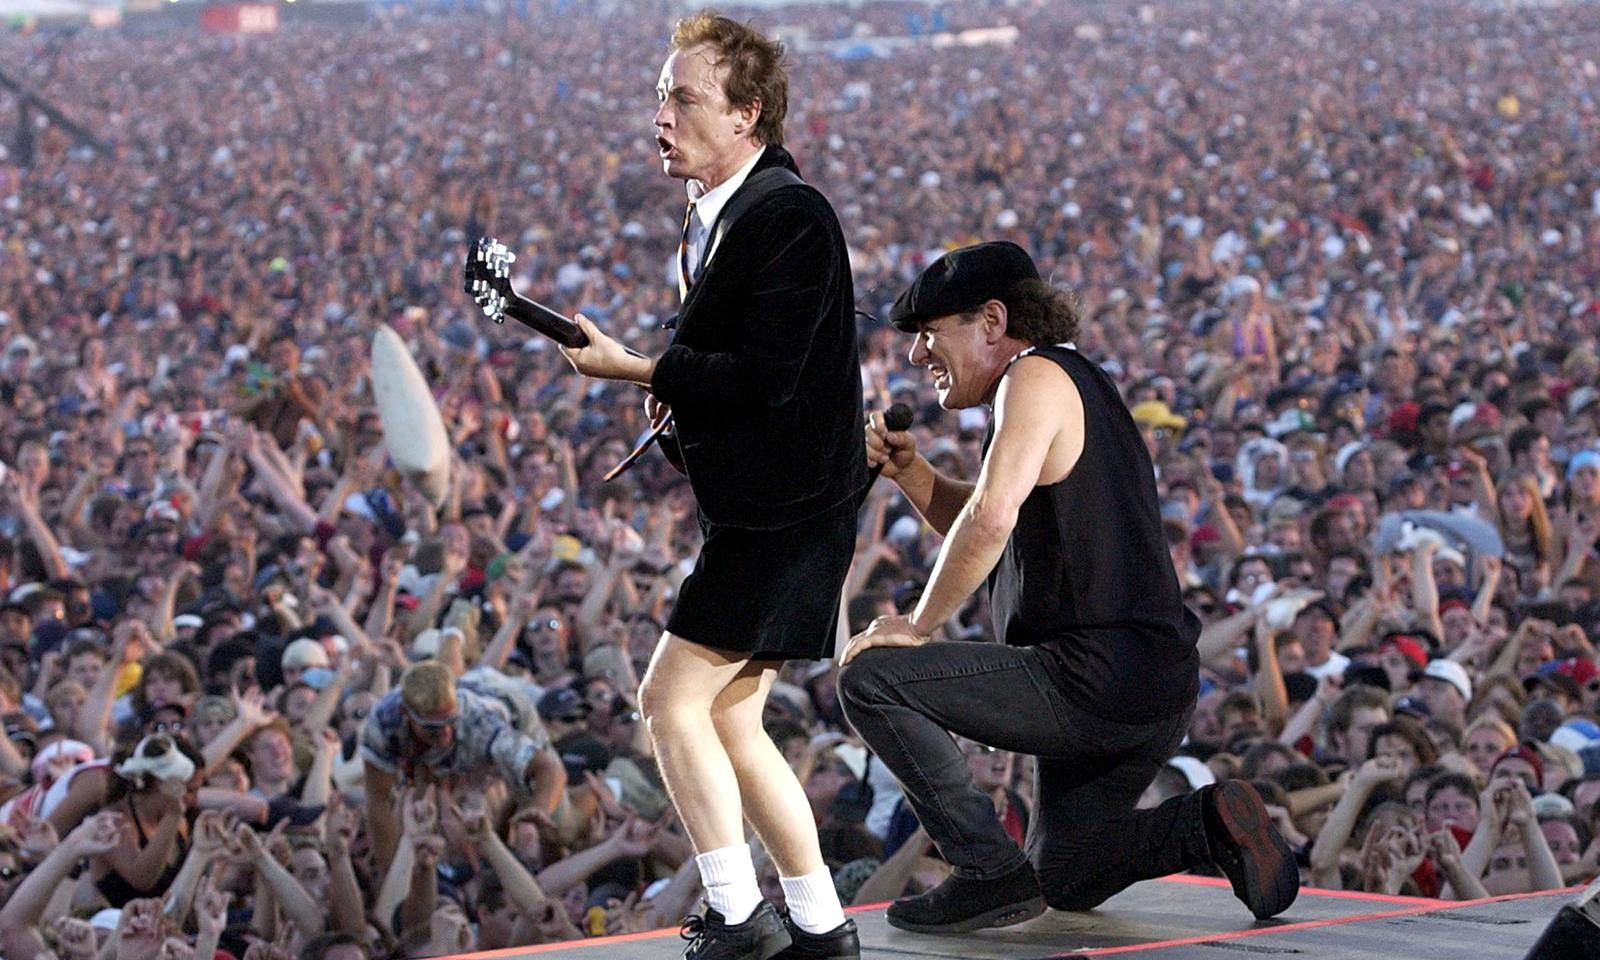 Brian Johnson and Angus Young of AC-DC on stage - Photograph Kmazur Wire Image